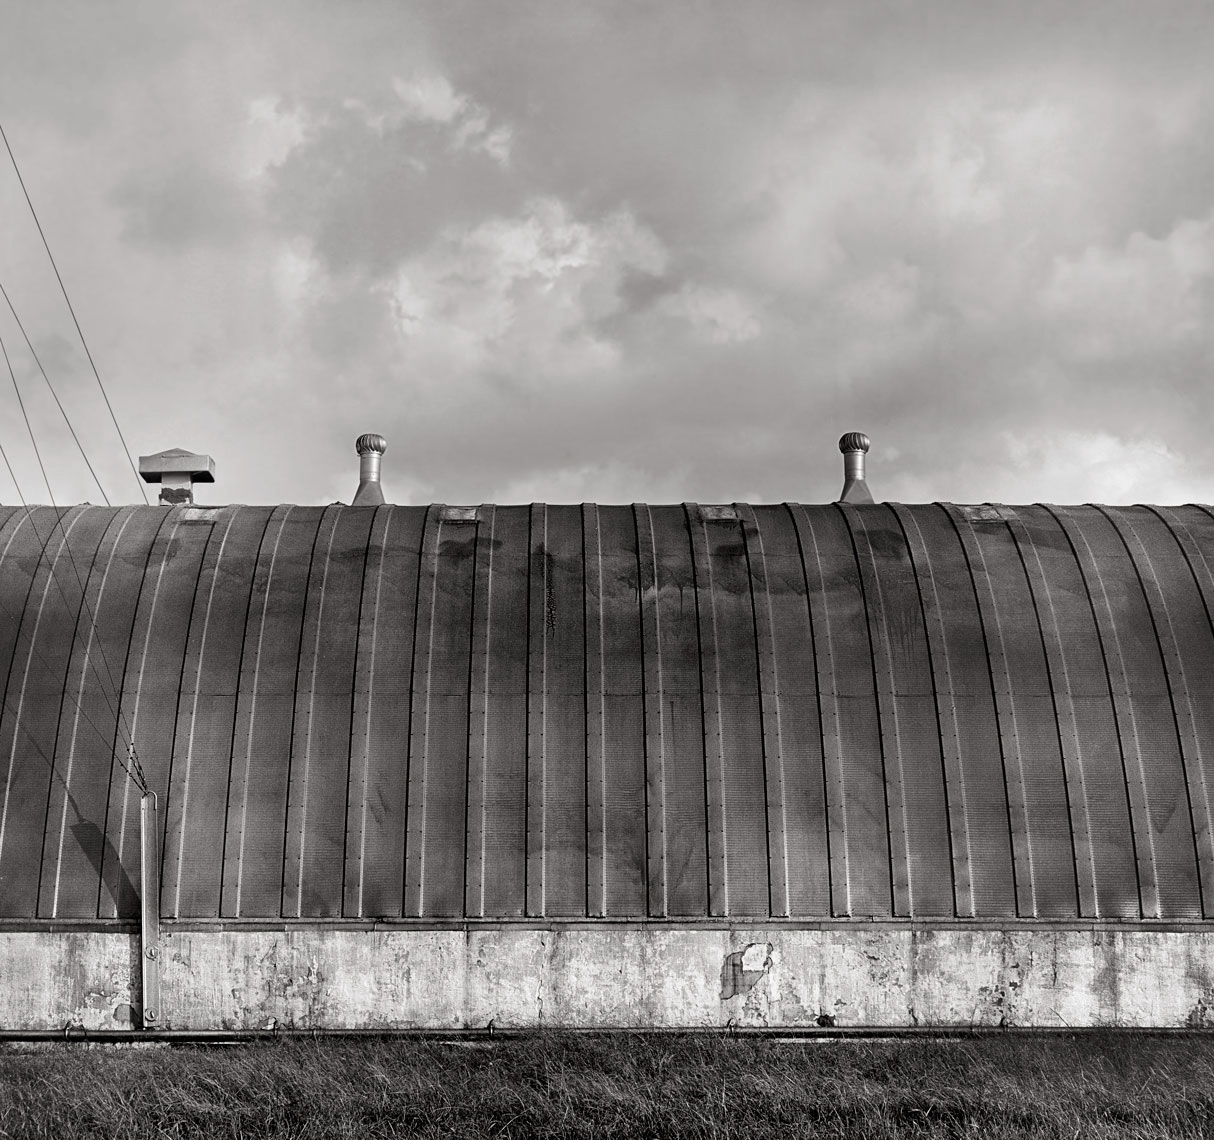 fine art photograph of quonset hut #1